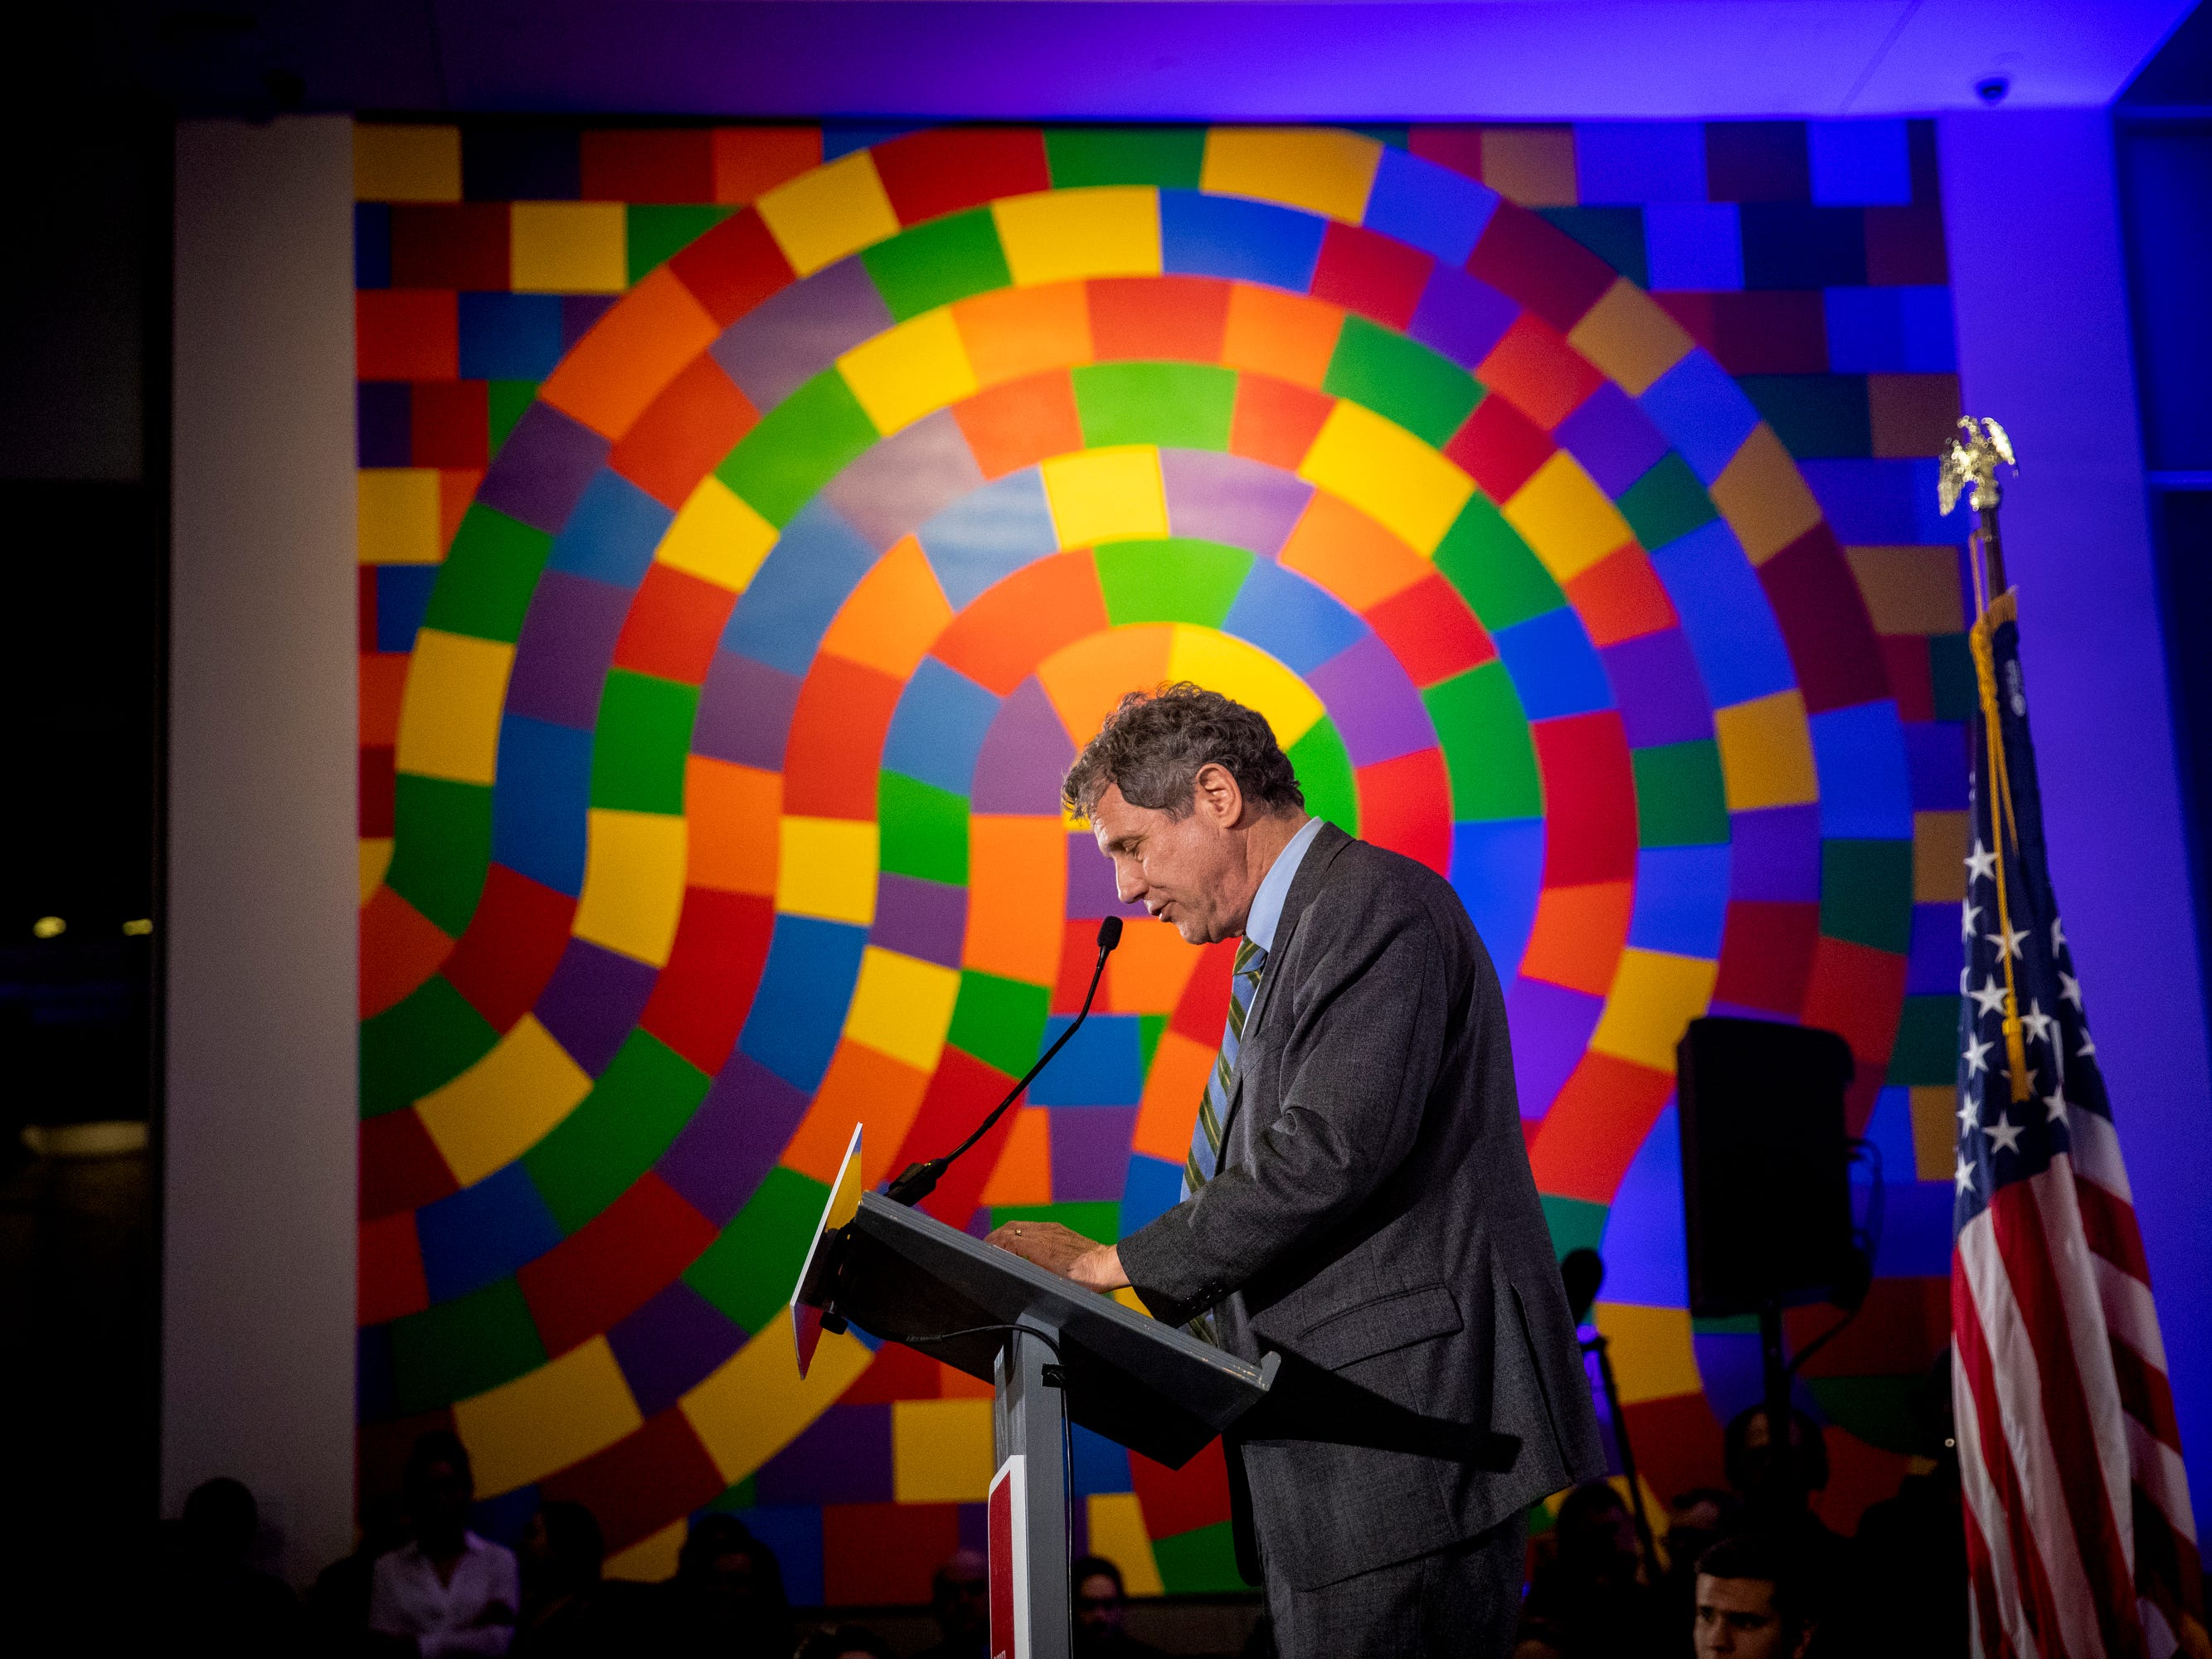 Senator Sherrod Brown delivers the keynote speech at the New Hampshire Young Democrats' Granite Slate Awards at the Currier Museum in Manchester, N.H. Saturday, February 9, 2019.